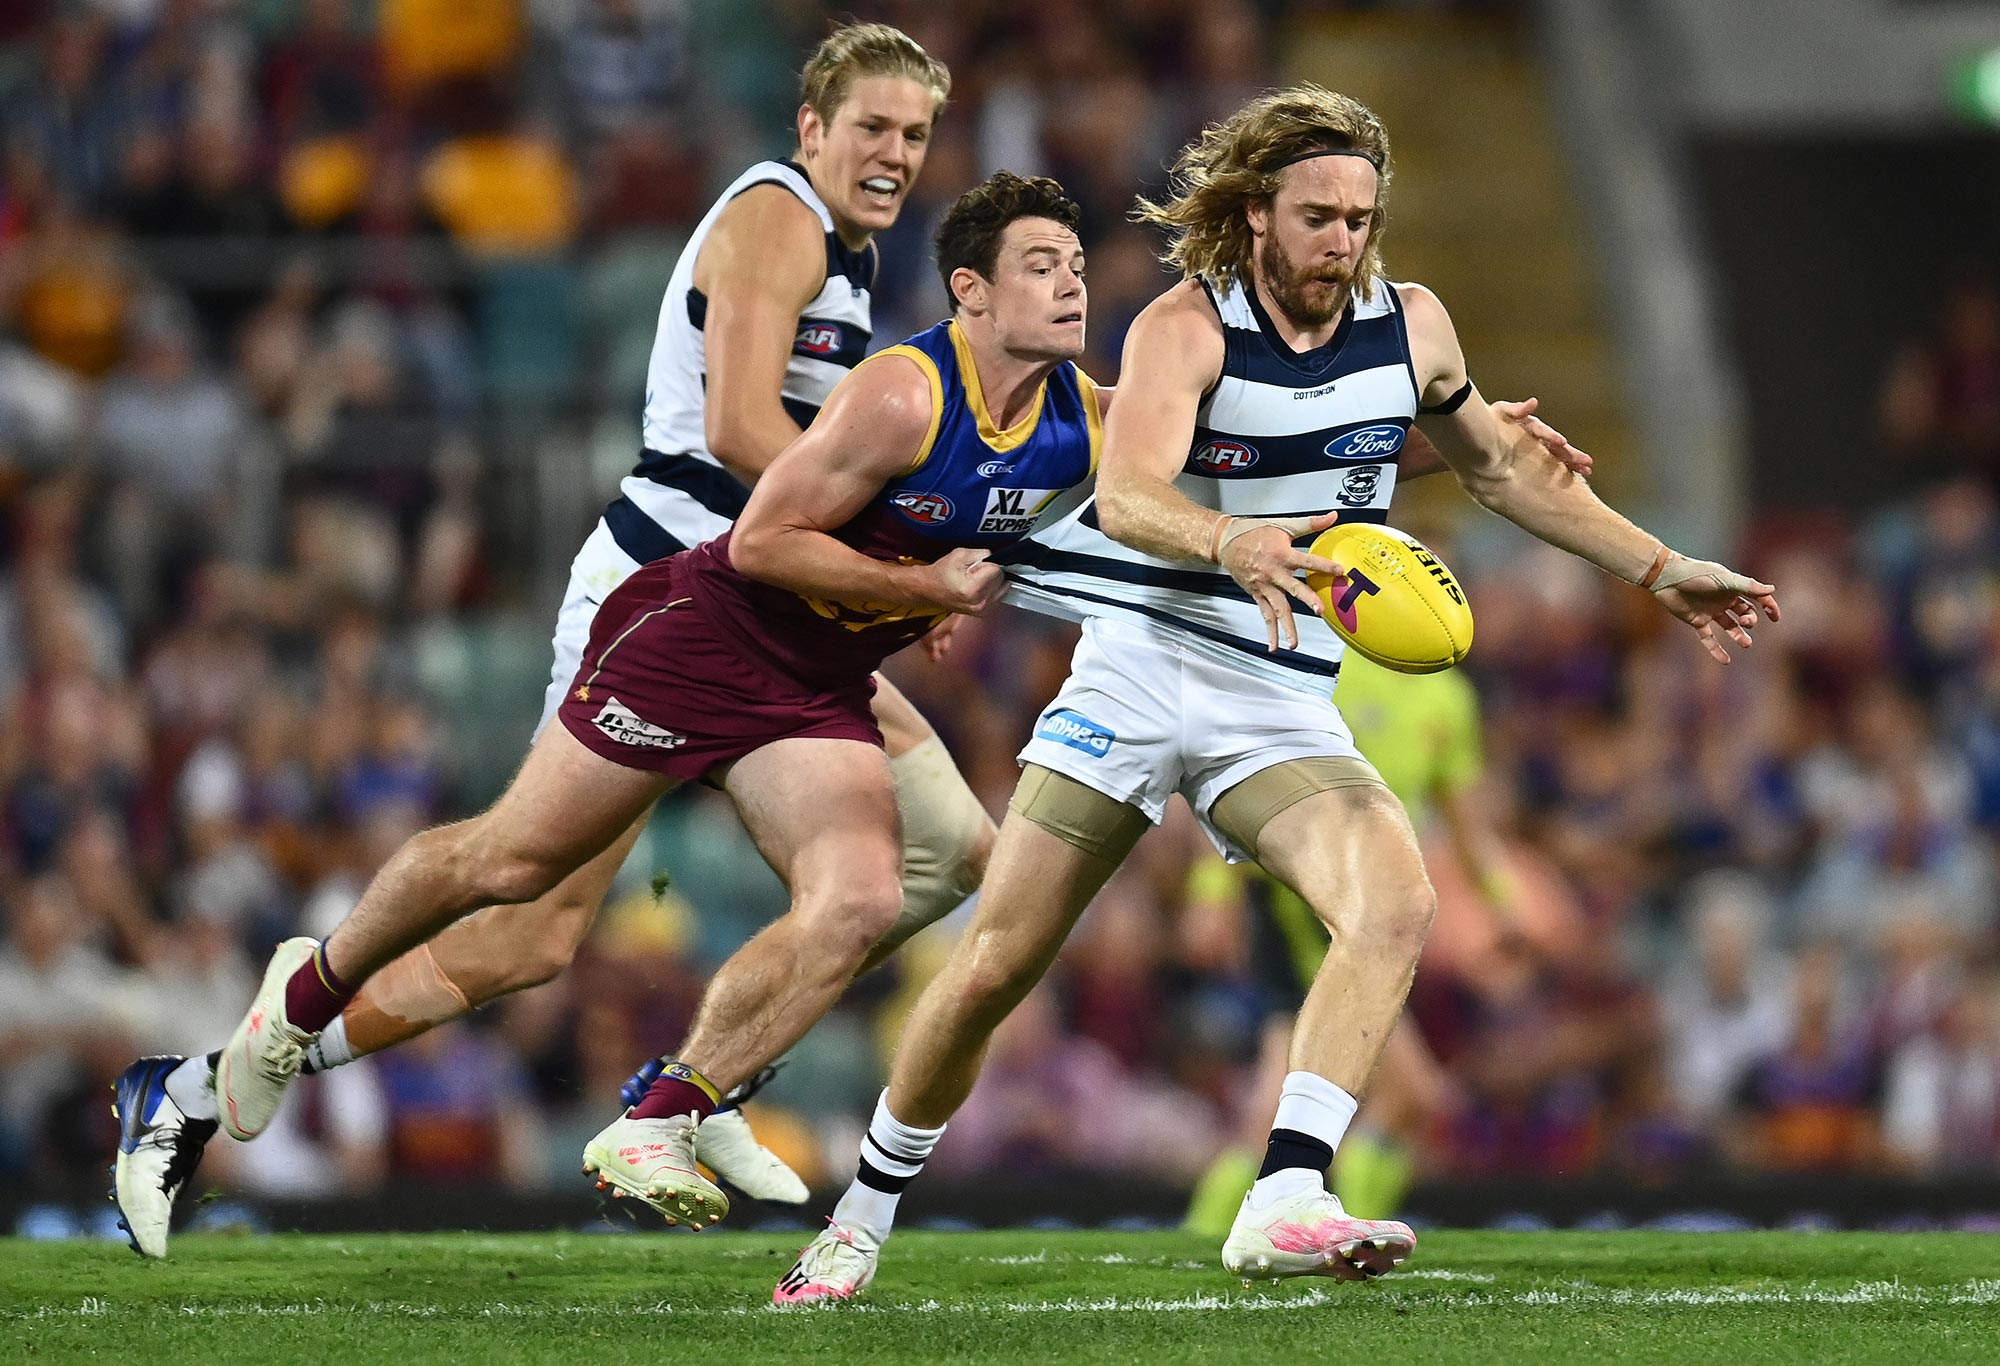 Cameron Guthrie of the Cats is challenged by Lachie Neale of the Lions